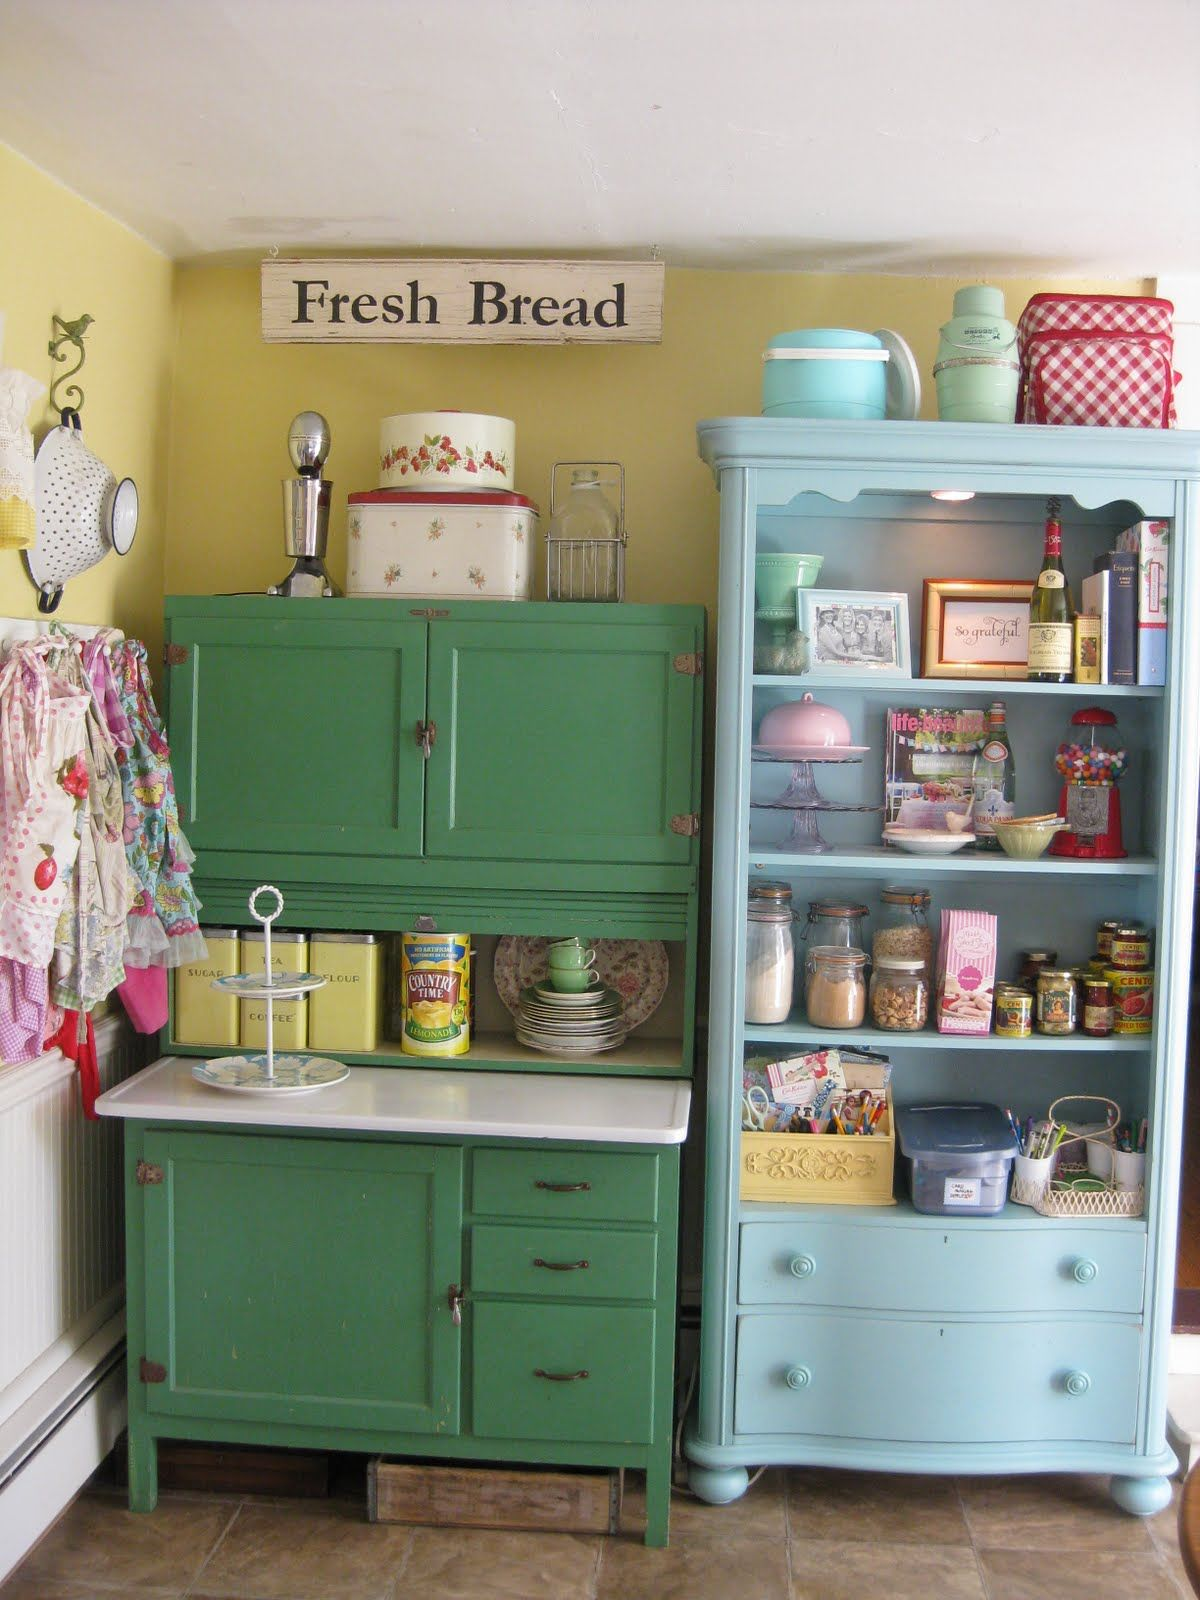 Small kitchen storage cabinets for Small retro kitchen